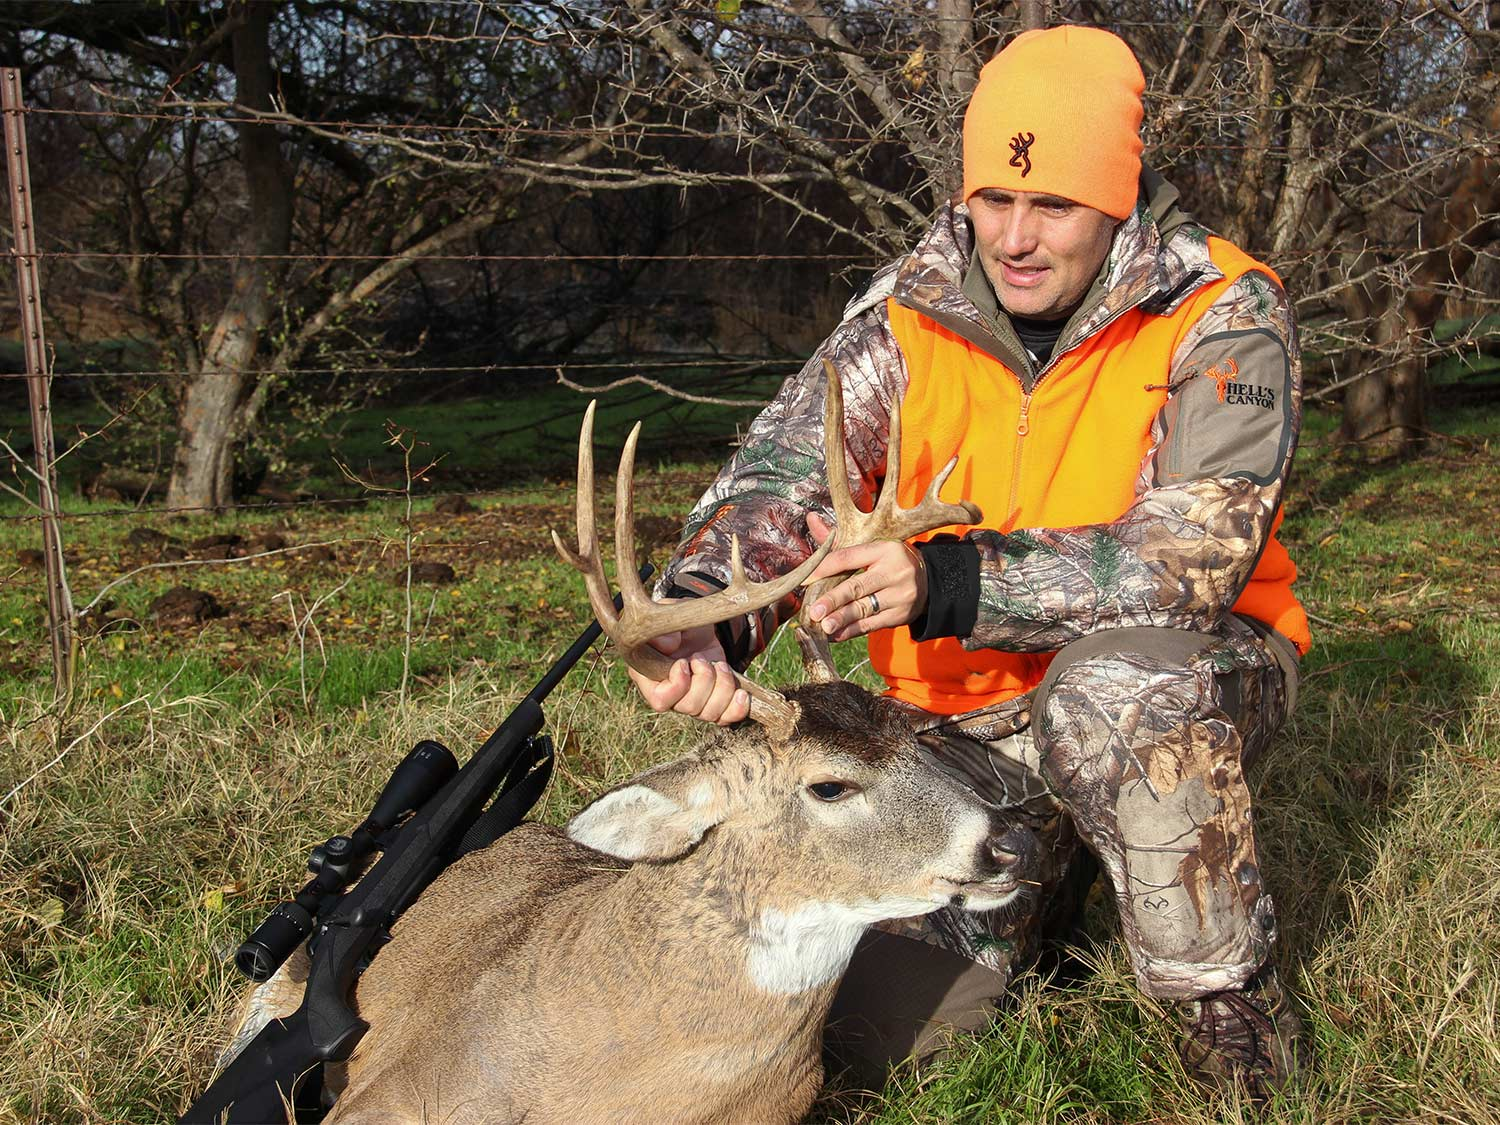 A hunter in camo and orange kneels next to a whitetail buck.